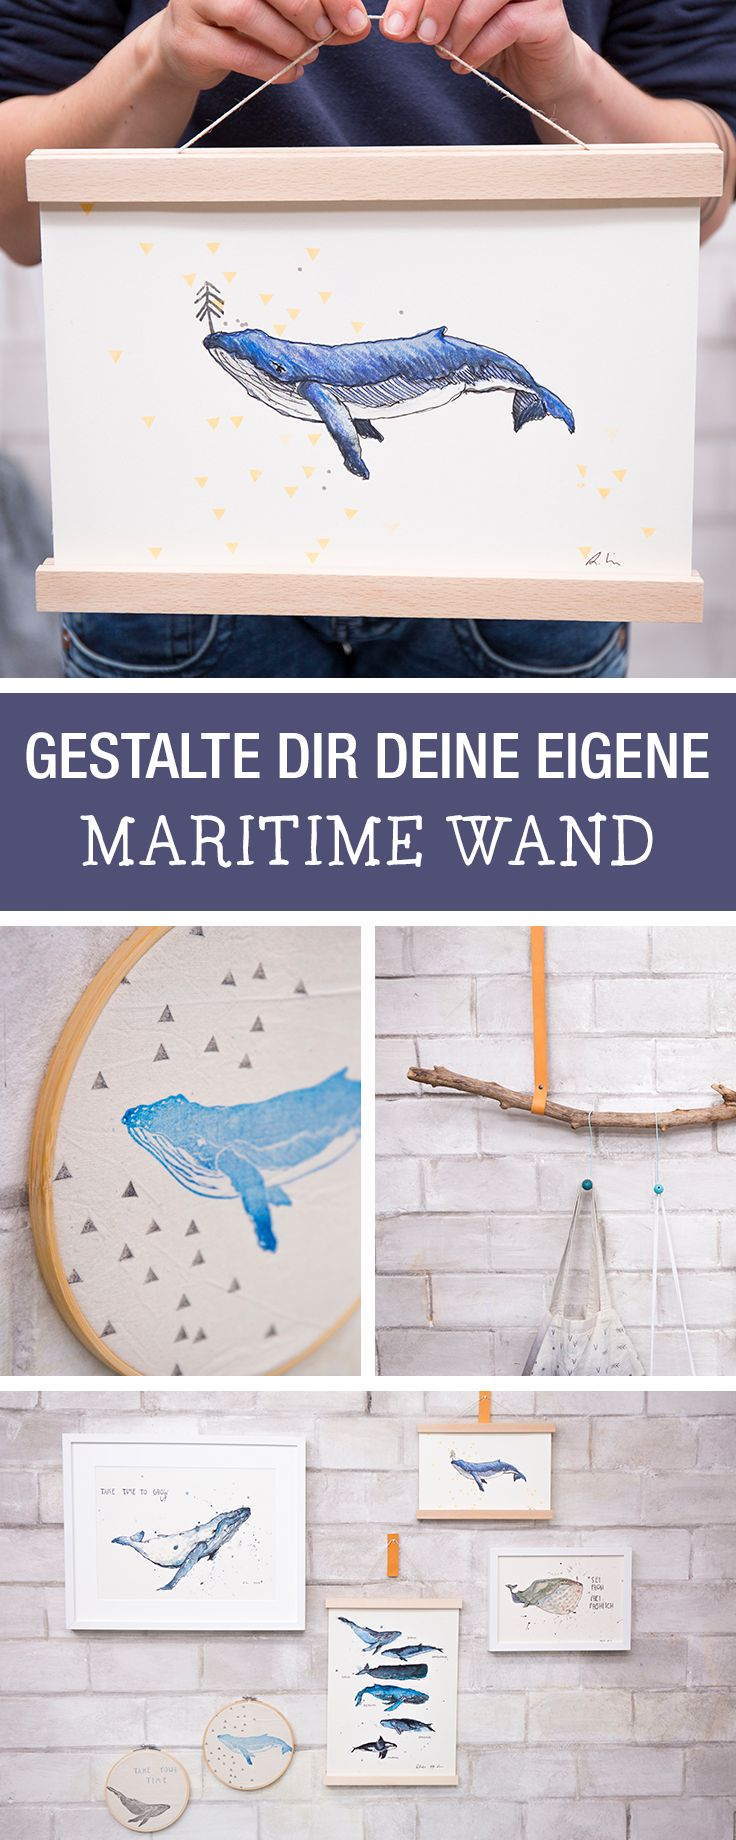 DIY-Anleitung: Ramona von halfbird zeigt Dir, wie Du mit Stempeldruck und Illustrationen Deine eigene maritime Wand gestaltest / how to make stamps with halfbird and tesa via DaWanda.com